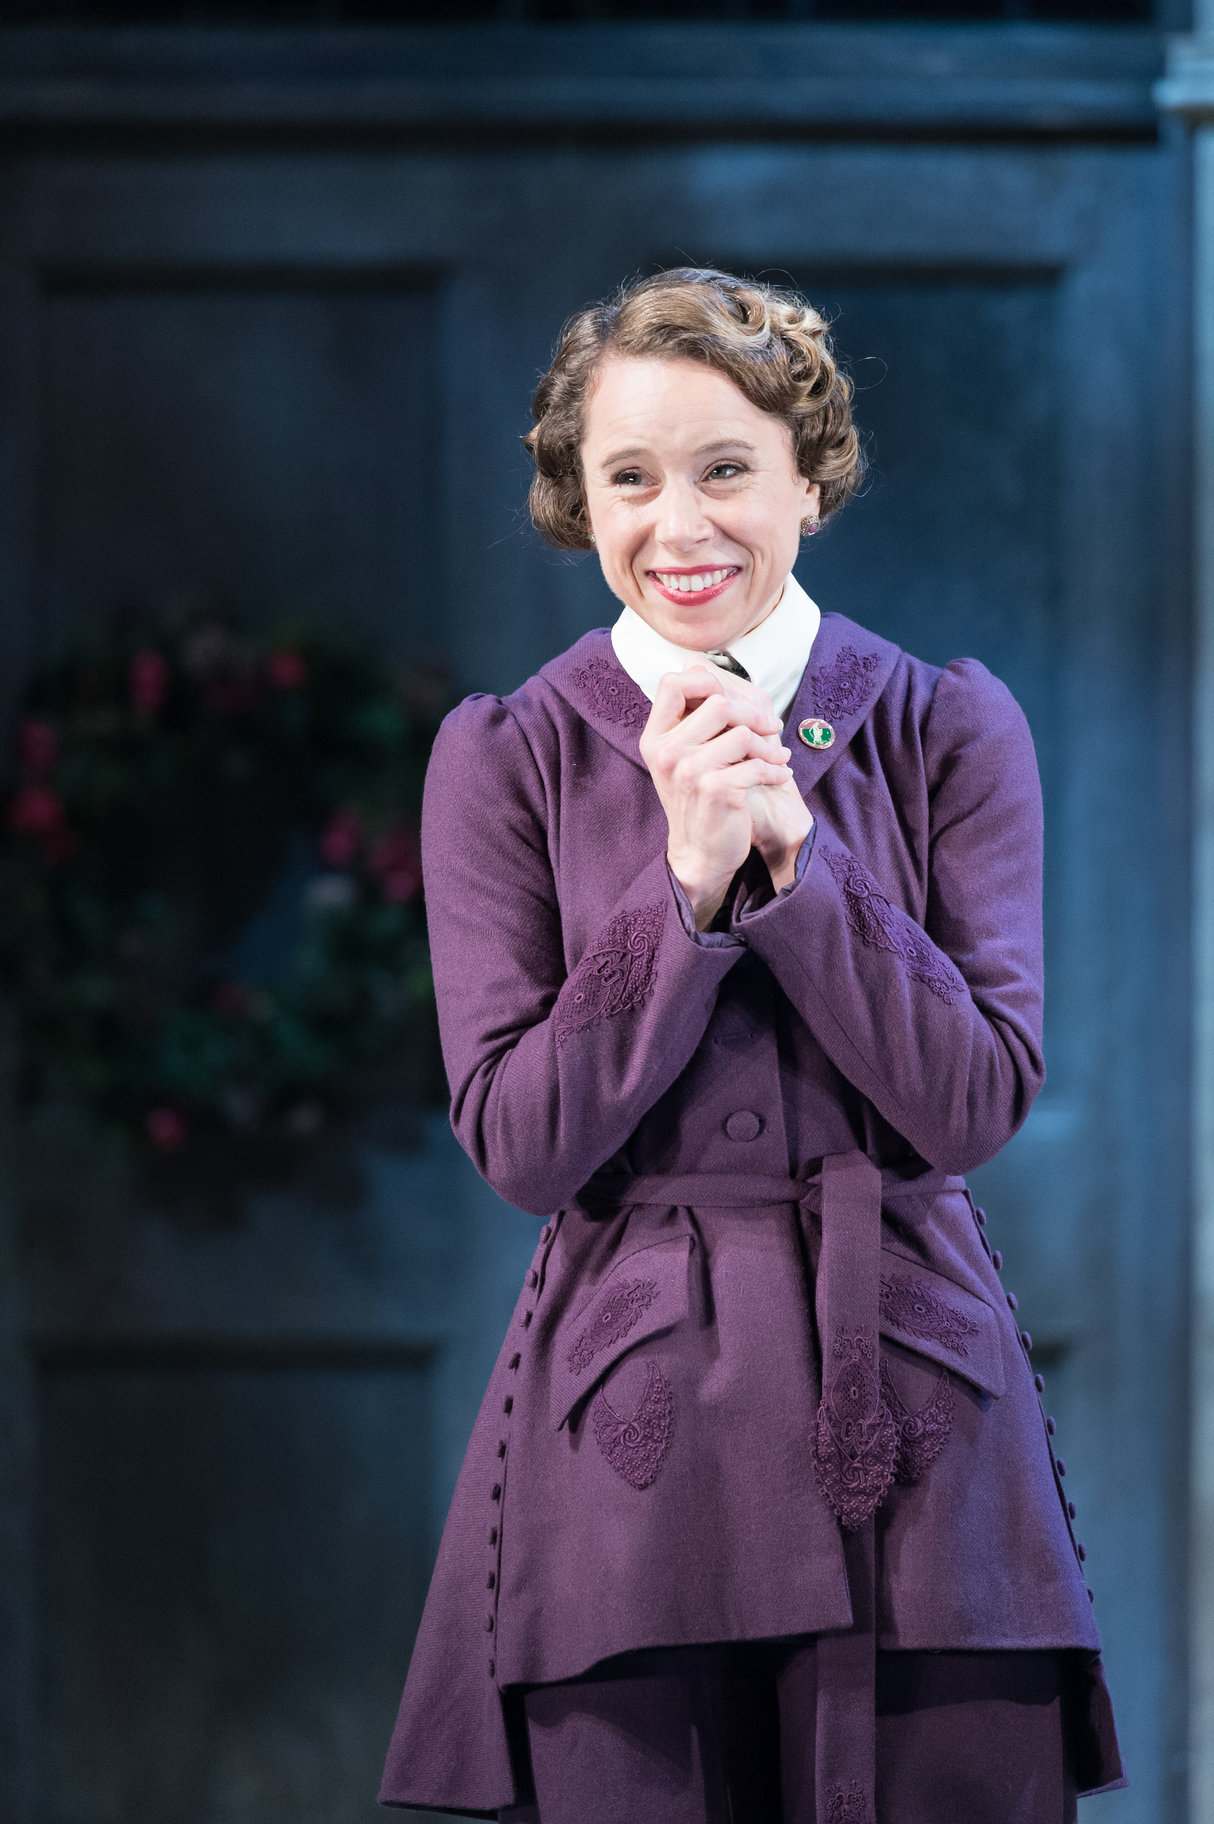 Michelle Terry as Beatrice in a purple suit.